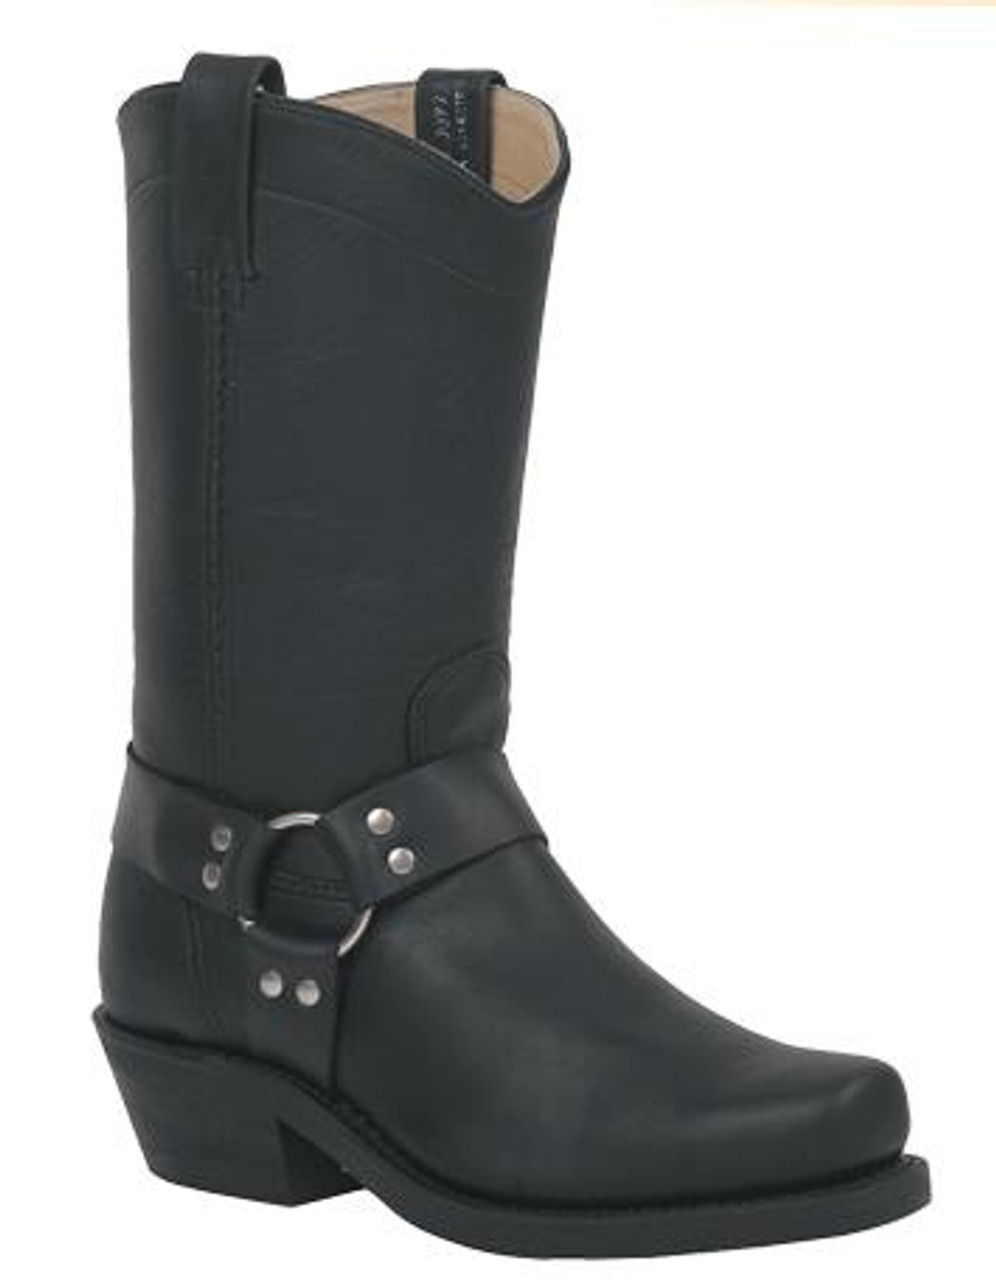 Canada West Black Leather Harness Bike Boot Herbert S Boots And